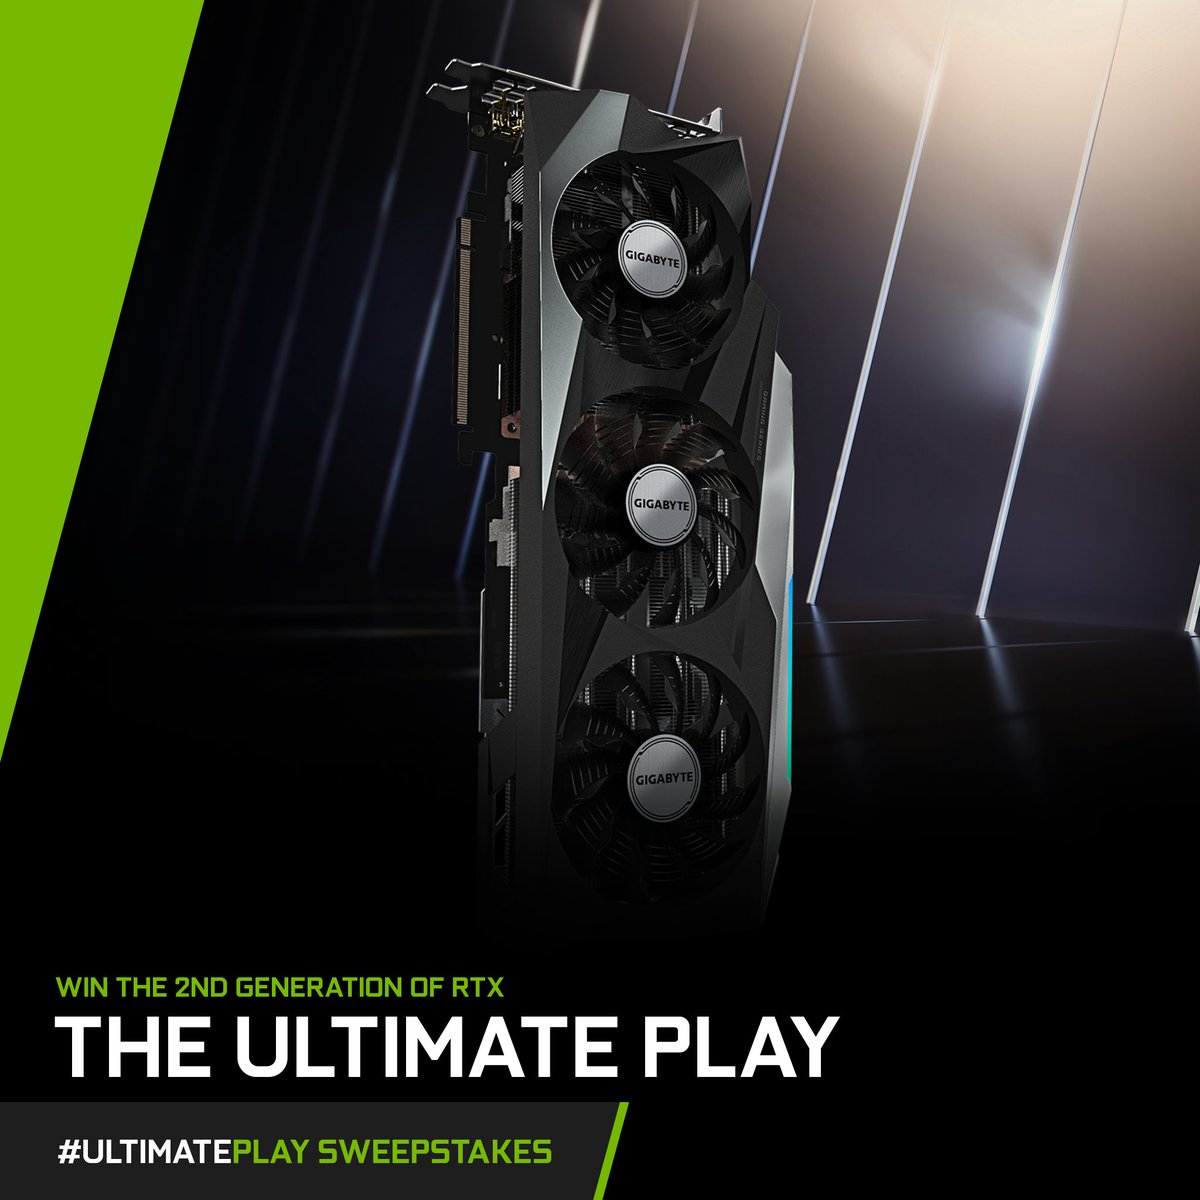 Today's #UltimatePlay Card Spotlight: @AorusOfficial    Key Features:   ⚪ WINDFORCE 3X Cooling System ⚪ RGB Fusion 2.0 – sync w/other AORUS devices ⚪ Protection metal back plate   Want your chance to win this card?  1. RT this post 2. Reply with #UltimatePlay